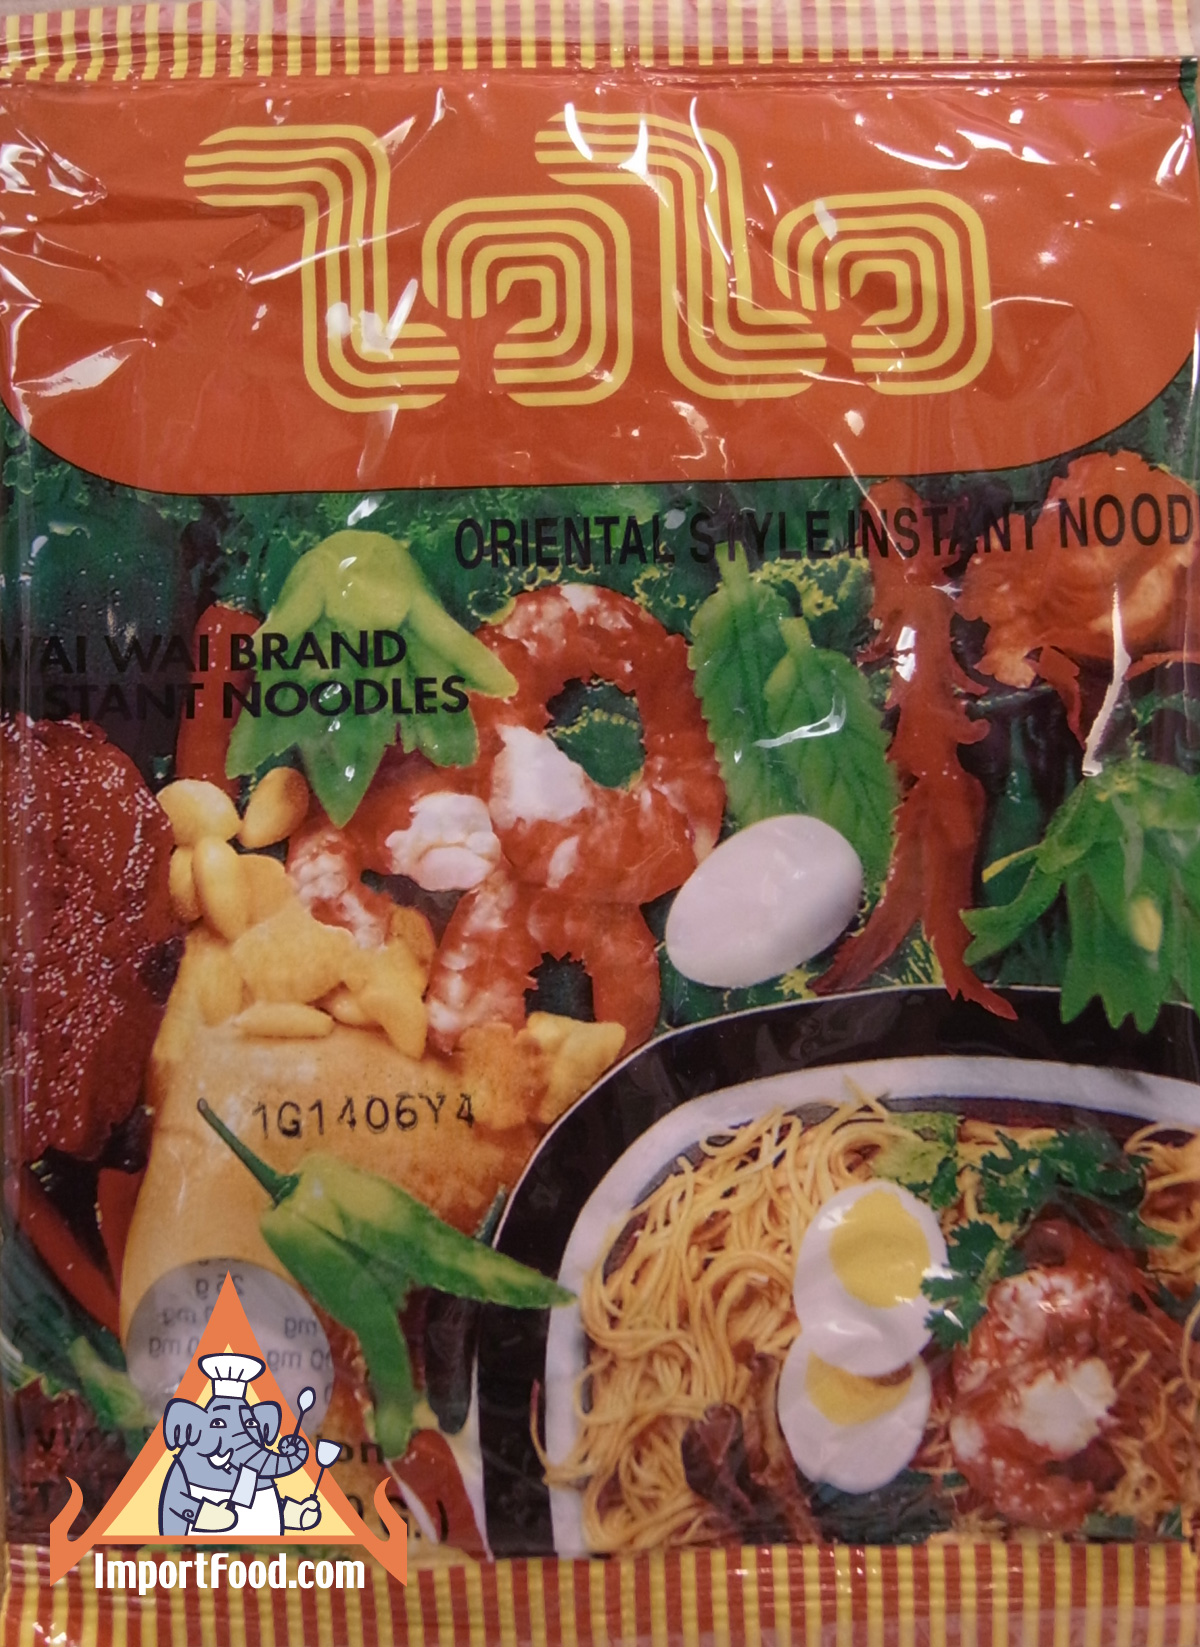 Wai Wai brand instant Thai noodles, Classic Oriental, available online from ImportFood.com1200 x 1647 jpeg 623kB